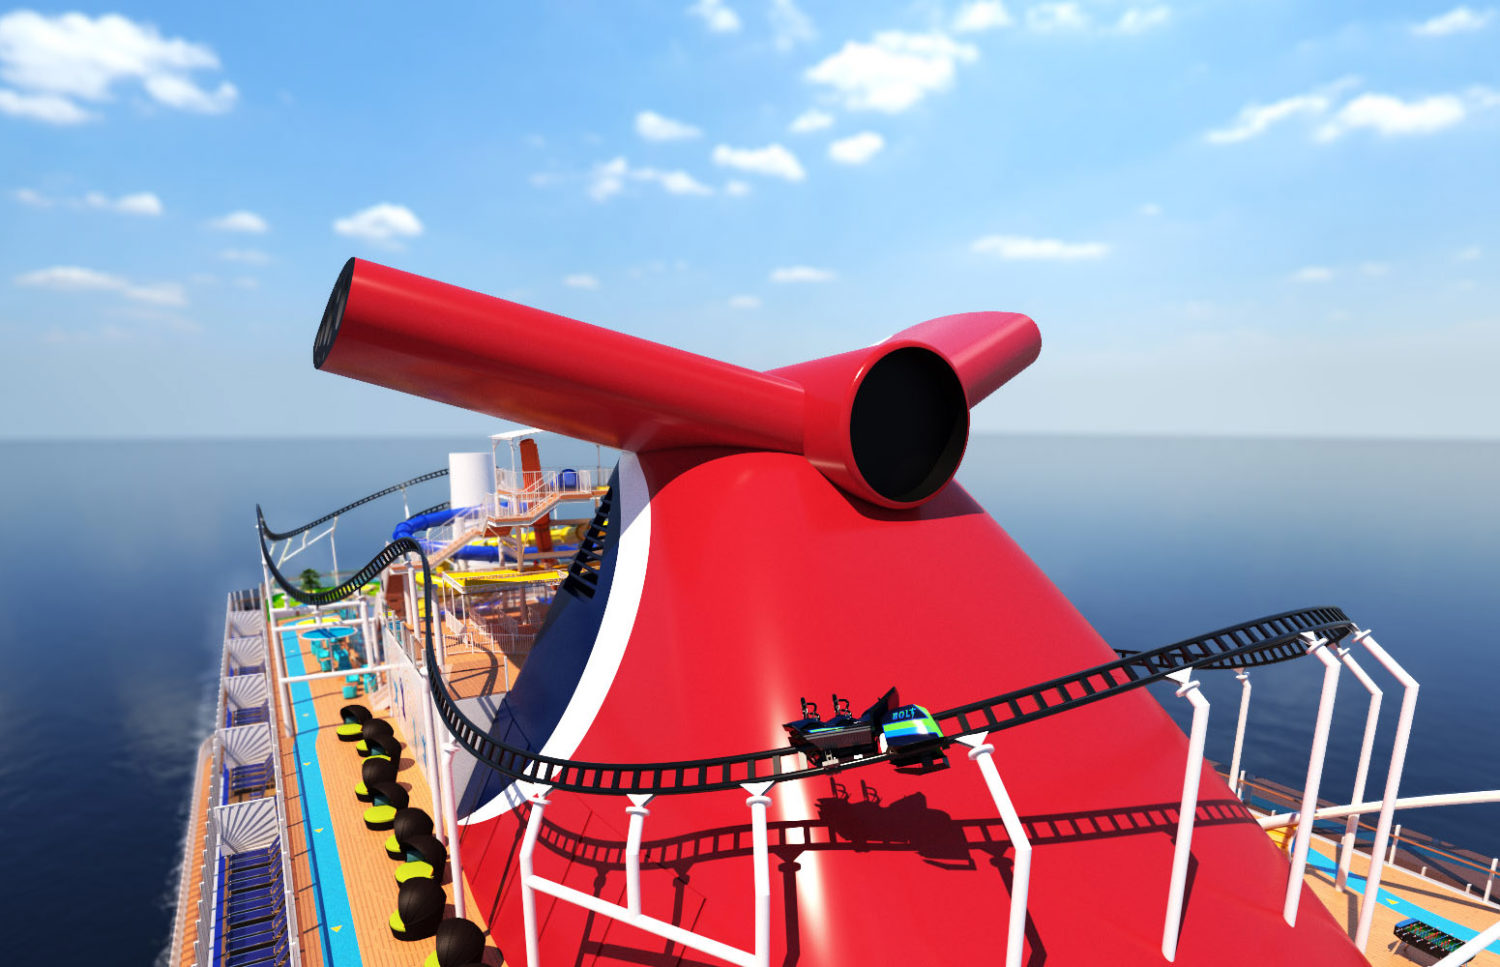 Carnival Cruise Line's cruise ship with a roller coaster